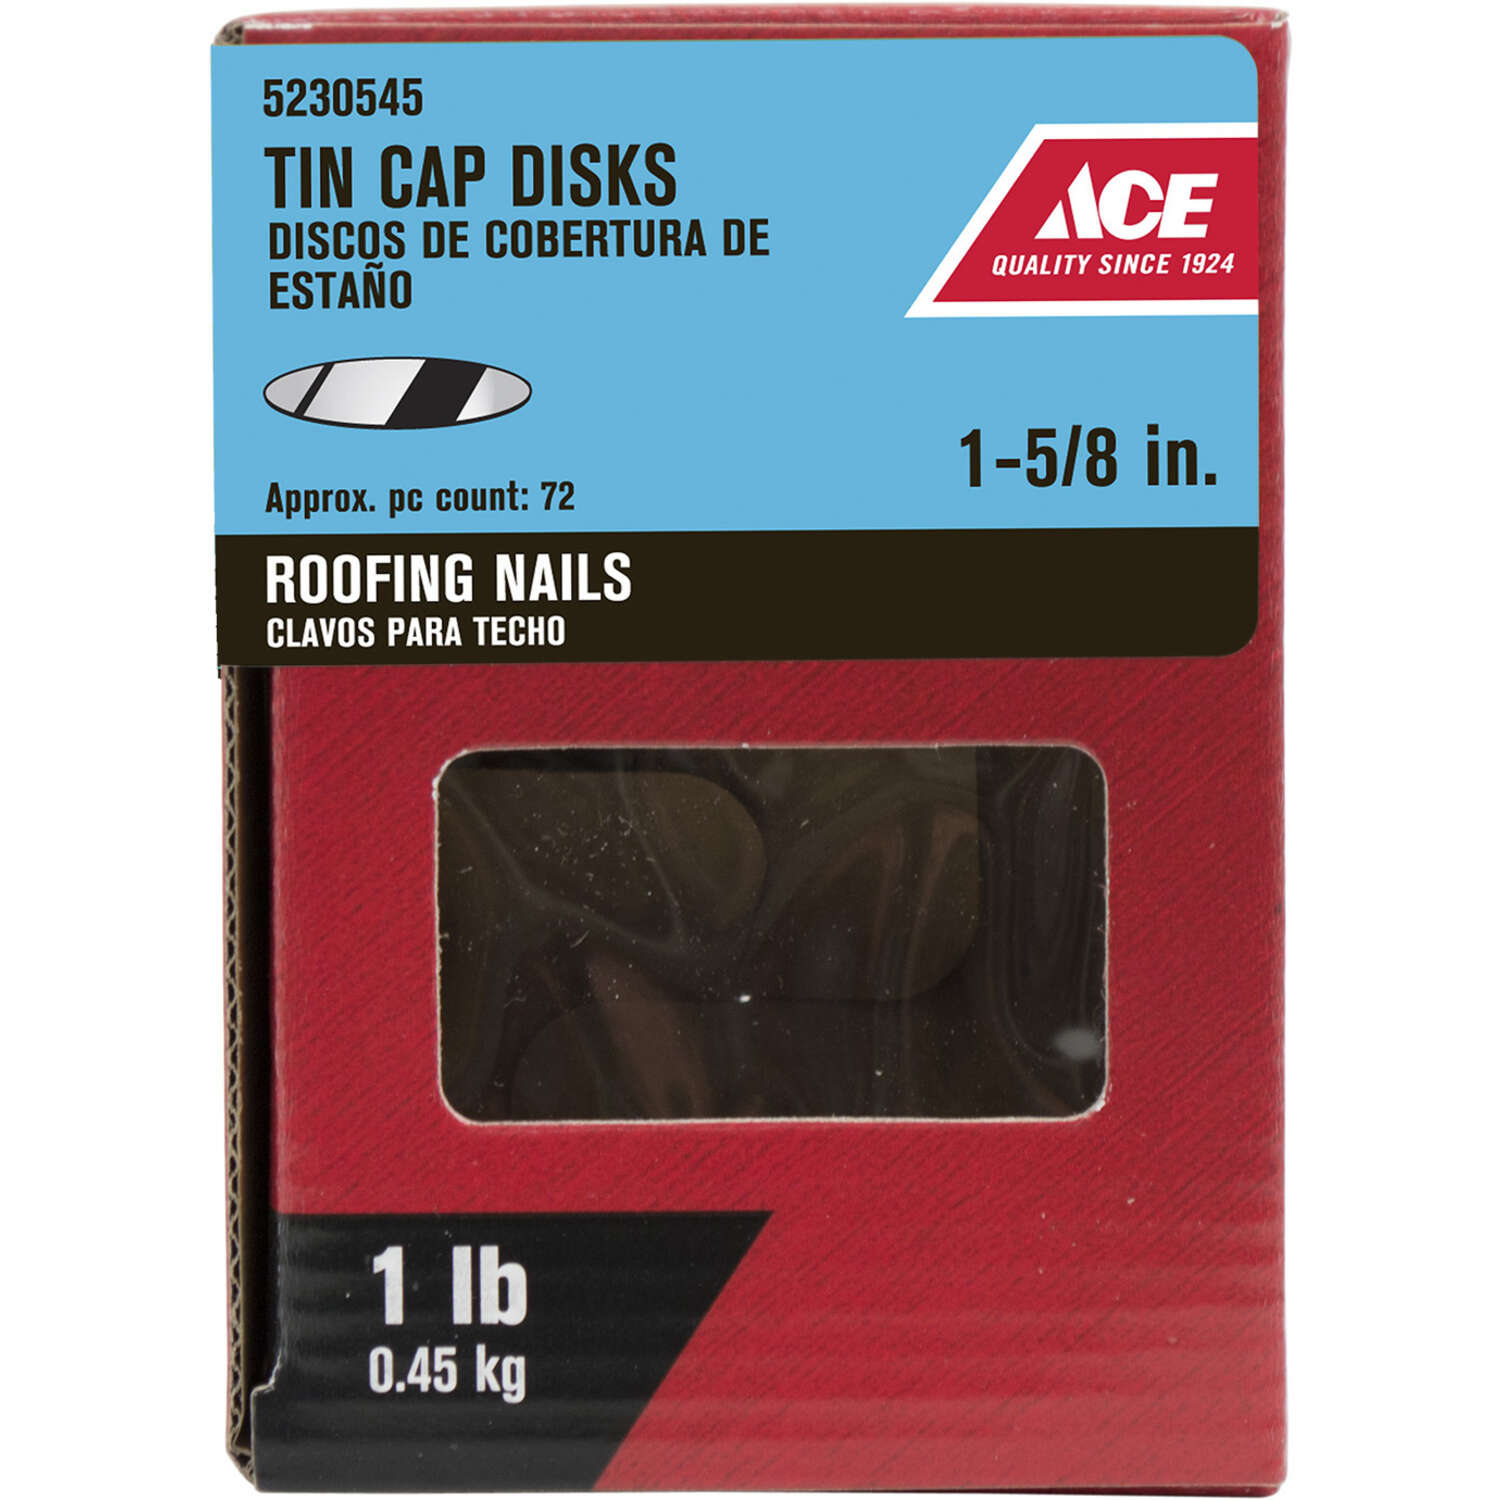 Ace  1-5/8 in. Roofing  Plastic/Steel  Tin Cap Disks  Flat  1 lb.